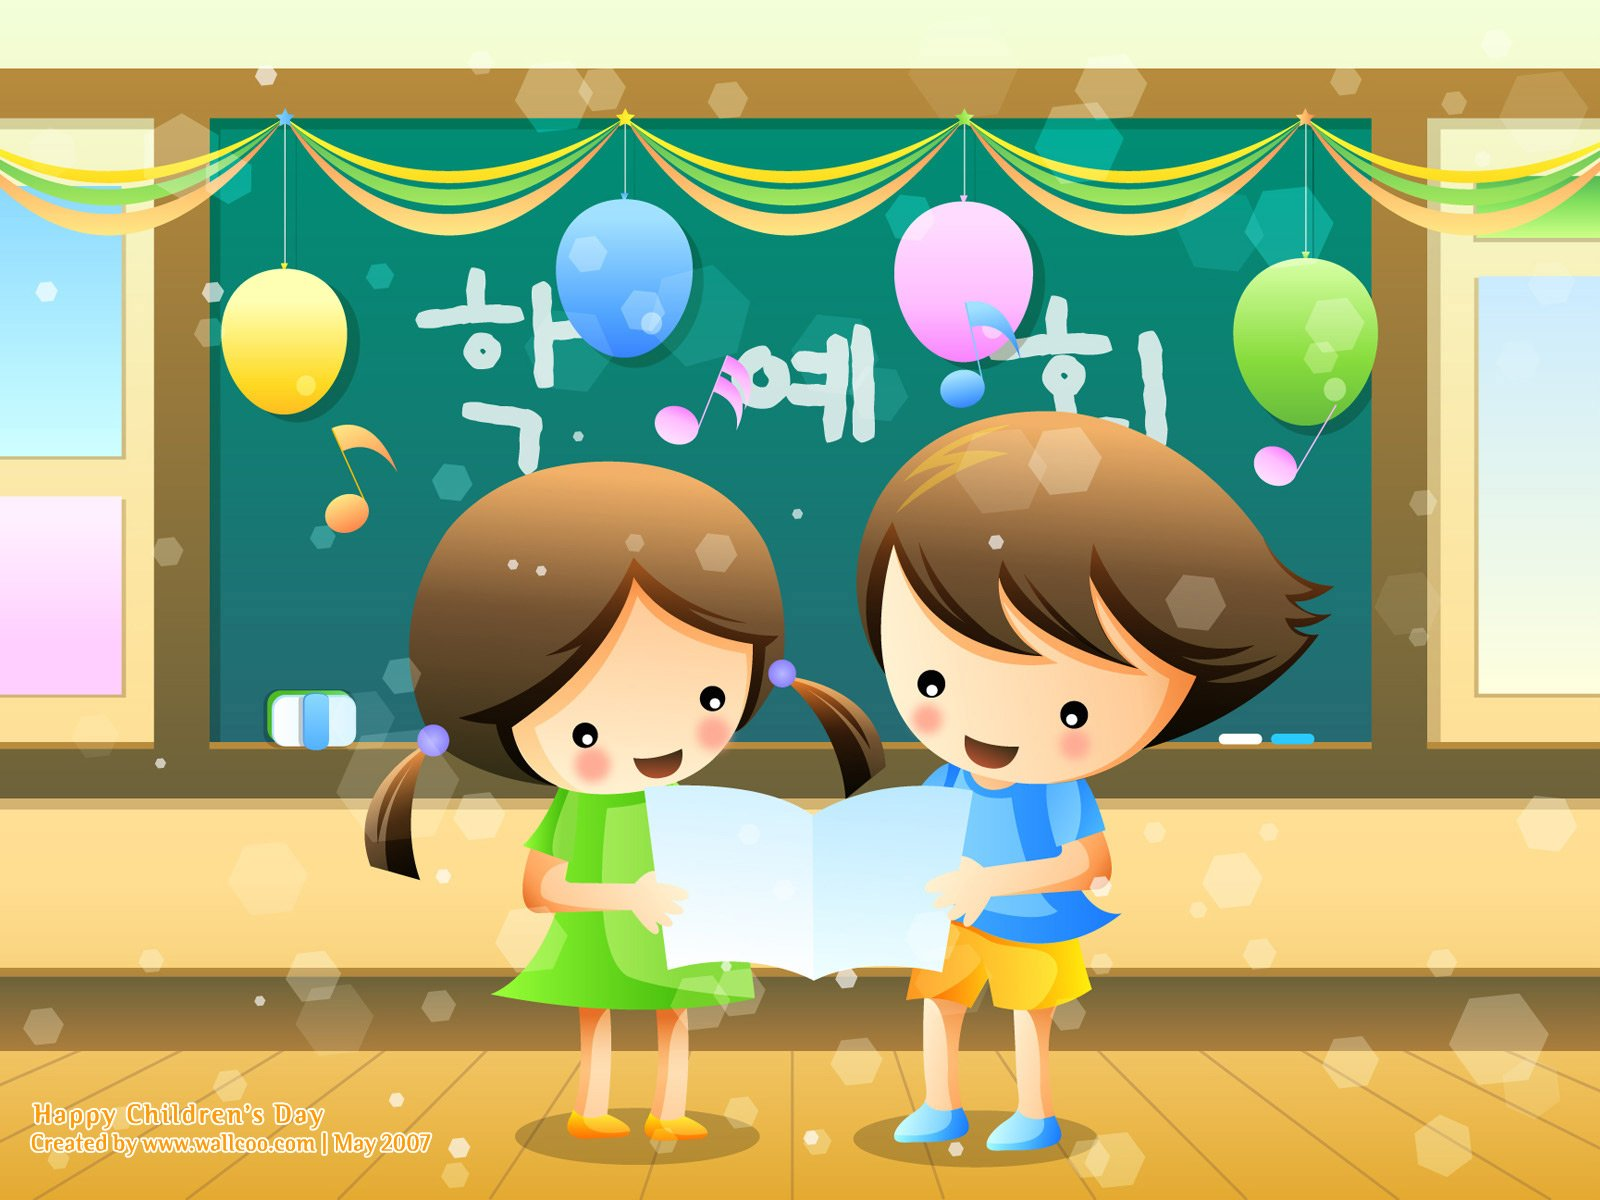 Colourful Illustrations for Childrens Day 16001200 NO9 Wallpaper 1600x1200